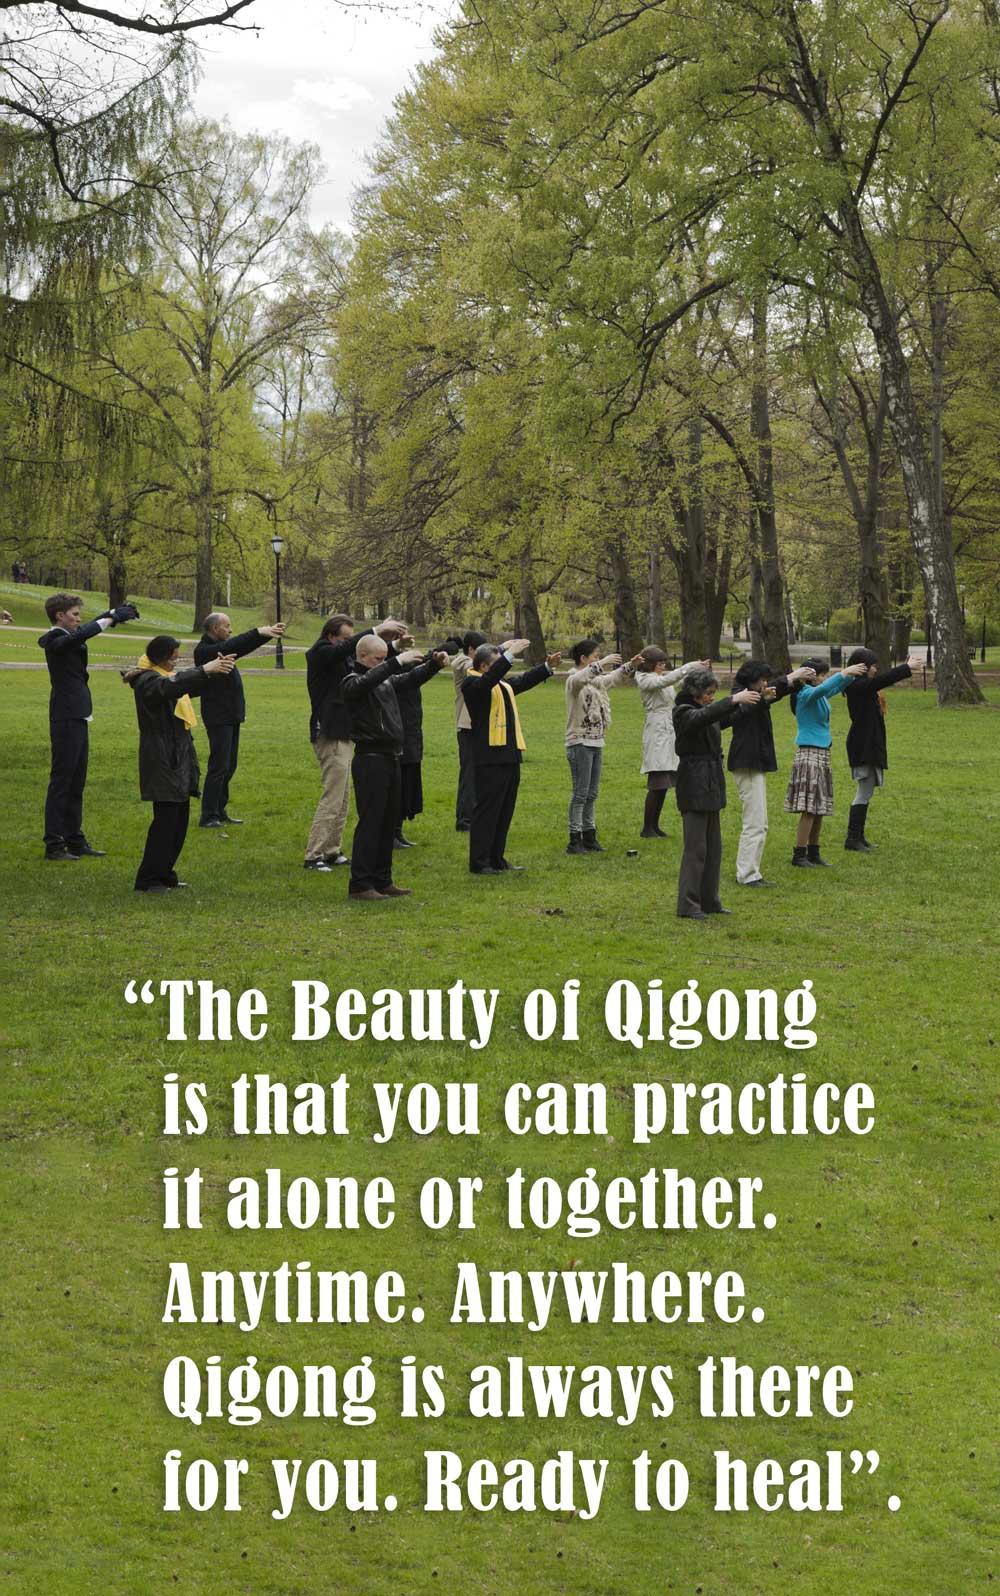 Qigong in the Park with Quote